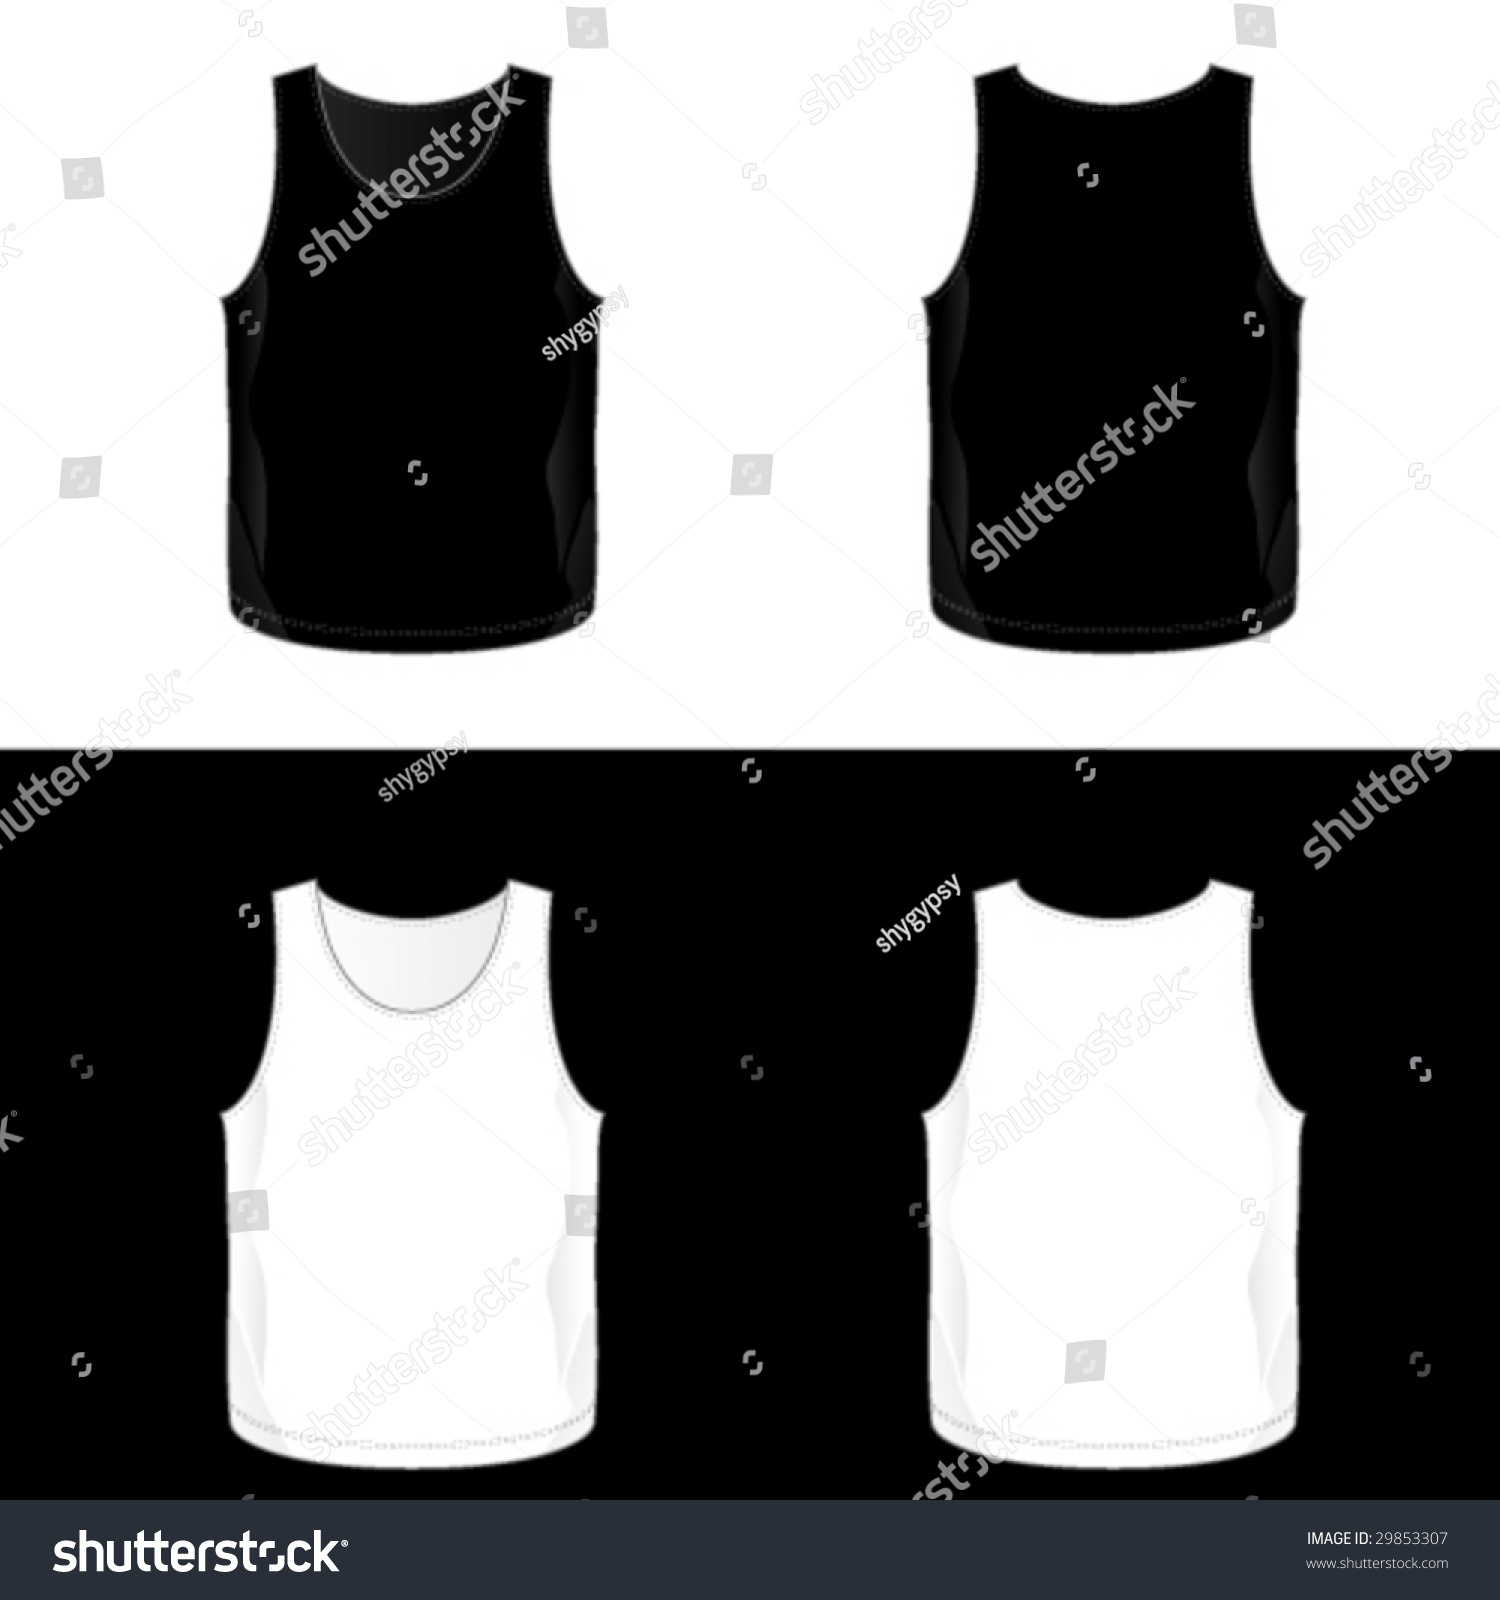 Black t shirt vector template - Black And White Realistic Blank Men S Tank Top Templates See Also V